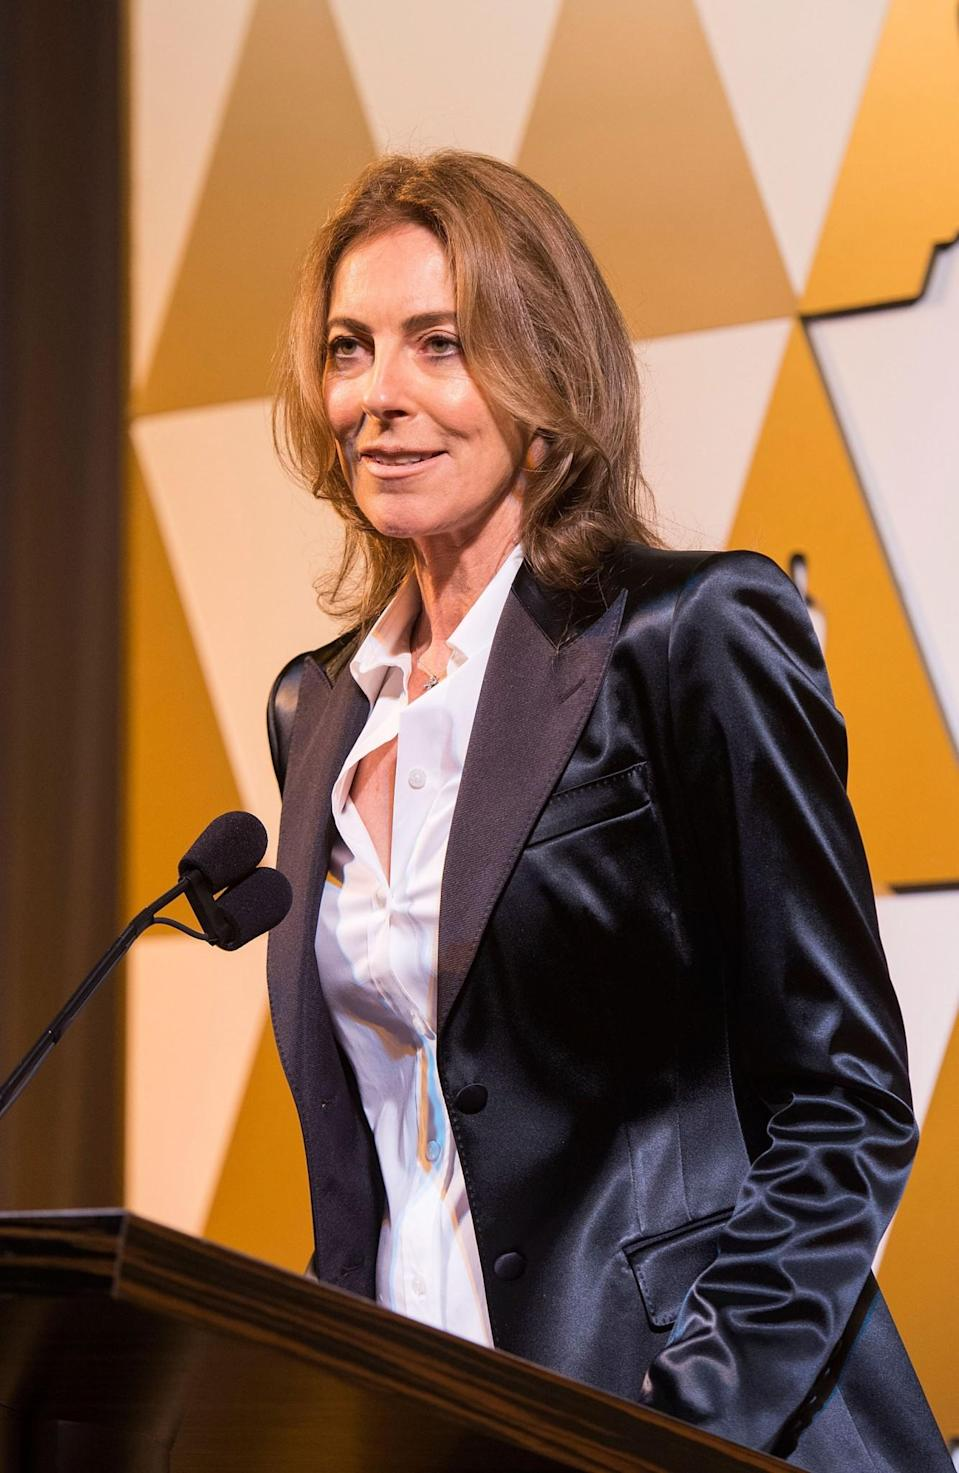 """<p>Kathryn Bigelow made history in 2010 as the first woman to win the best director Oscar for her Iraq war film, <i>The Hurt Locker</i>. She described the award as a """"moment of a lifetime"""" and reiterated the fact that she likes to think of herself as just a filmmaker rather than a female one. <i>[Photo: Getty]</i> </p>"""